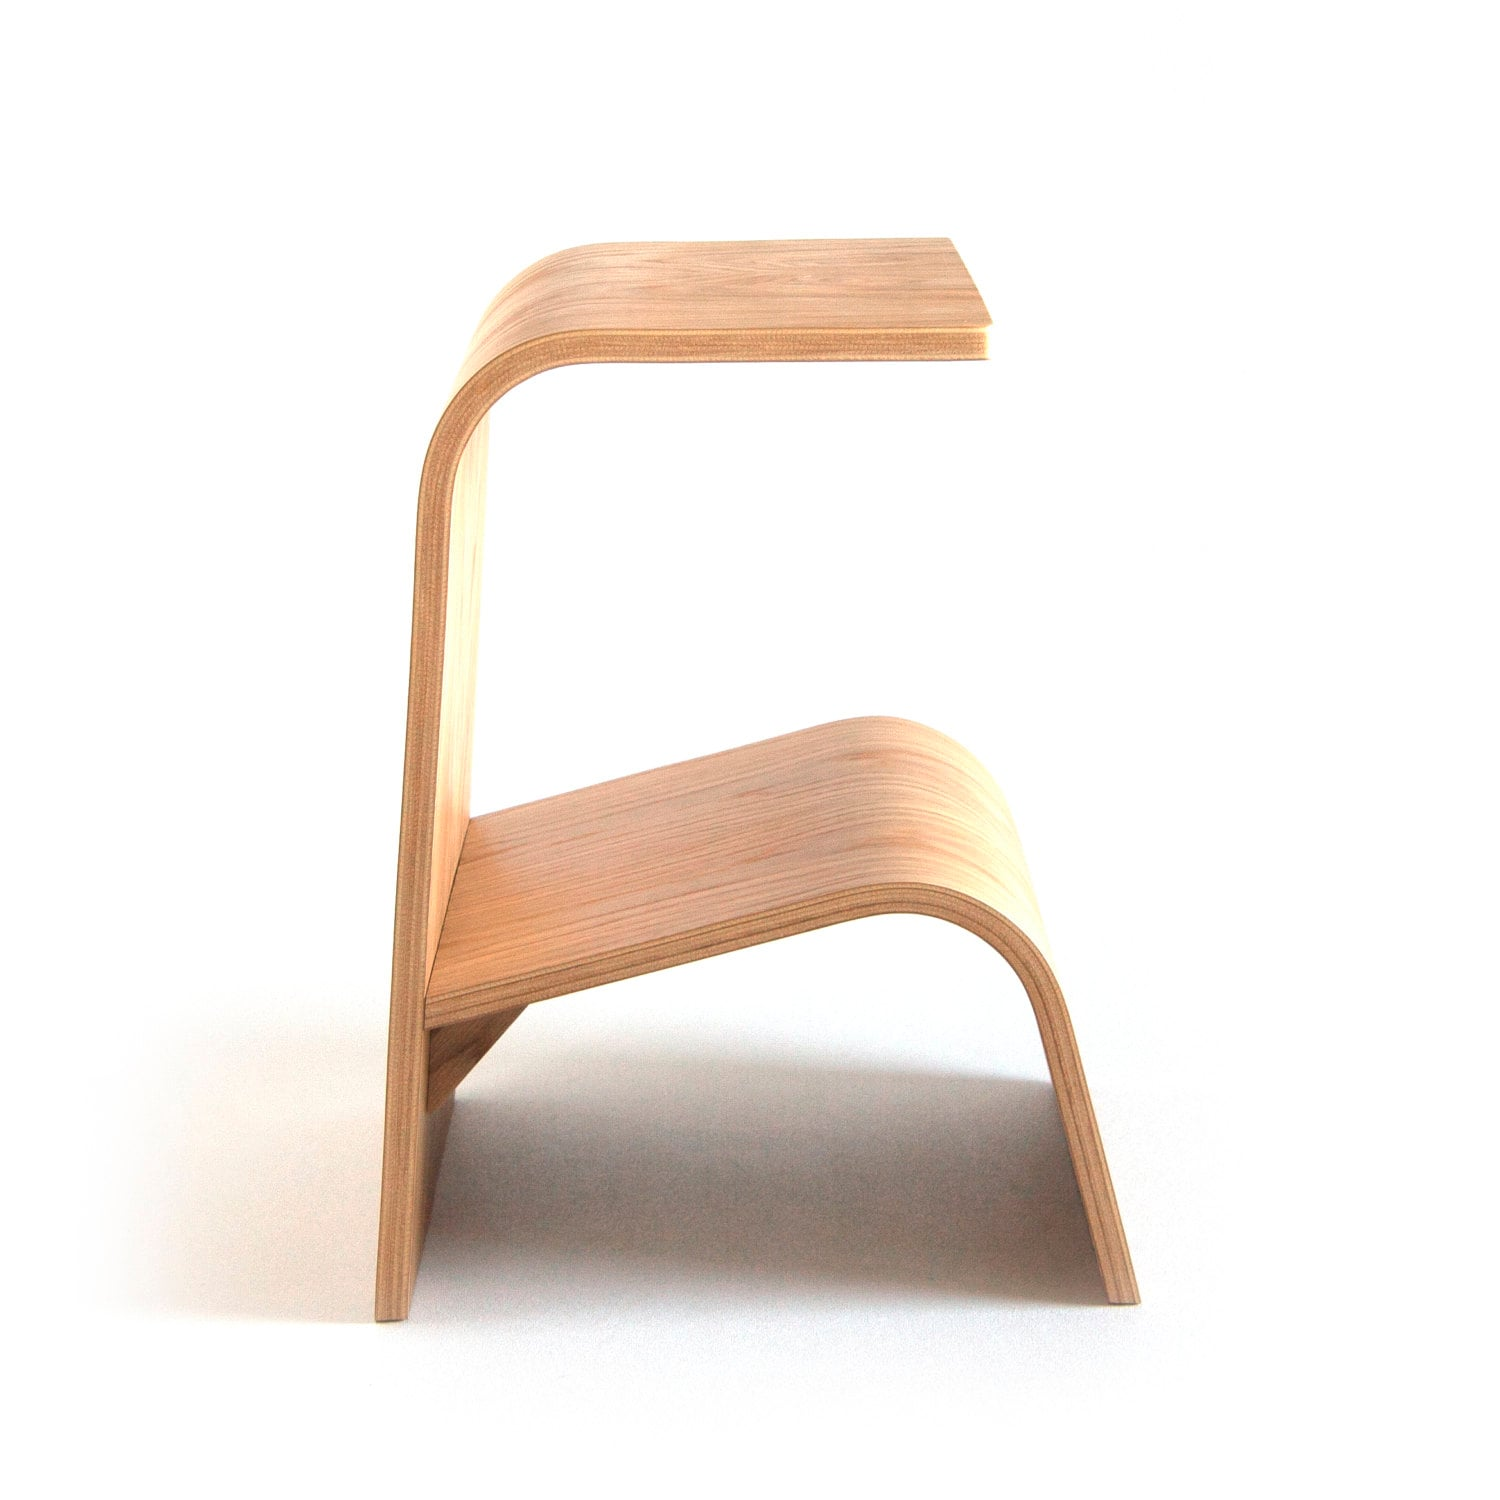 End Table Bent Plywood | Side Table | Wood End Table | Bedside Table | Coffee  sc 1 st  Etsy & Stool Bent Plywood Wood Stool Wooden Stool Small Stool islam-shia.org